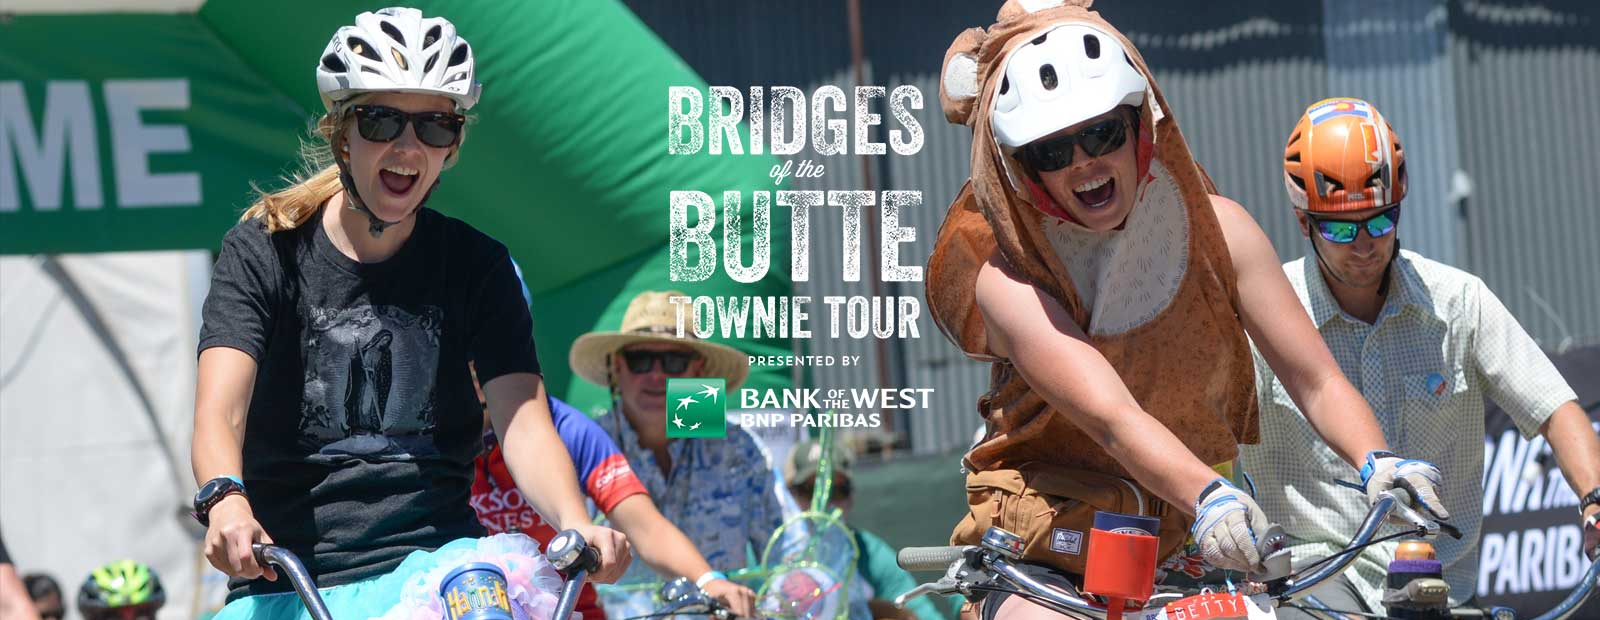 Bridges of the Butte participants on bikes in costume